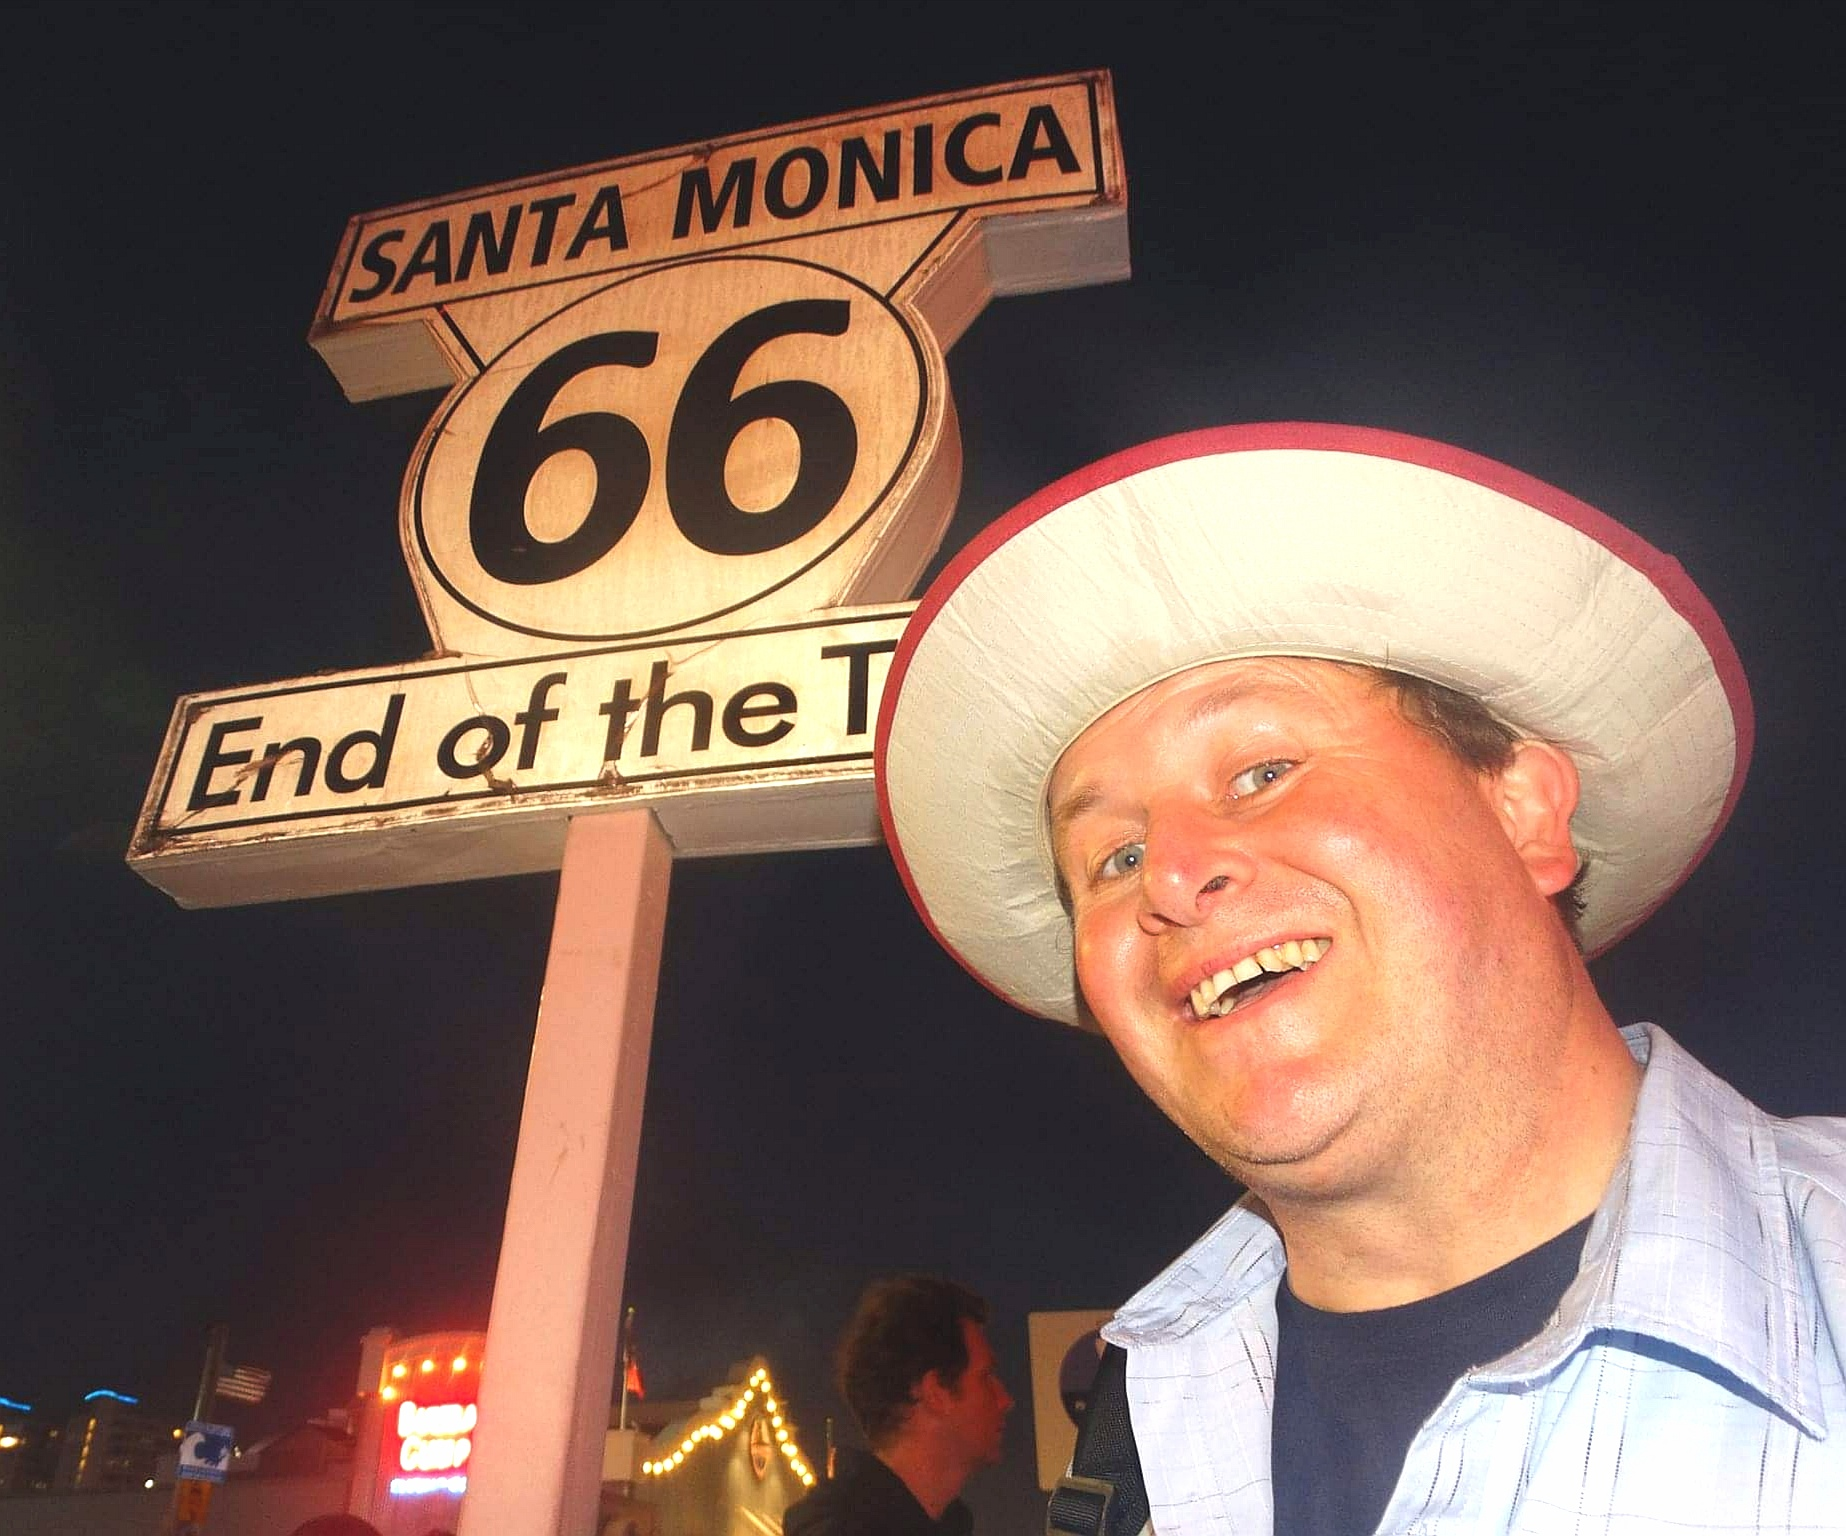 Santa Monica, USA. The end of Route 66